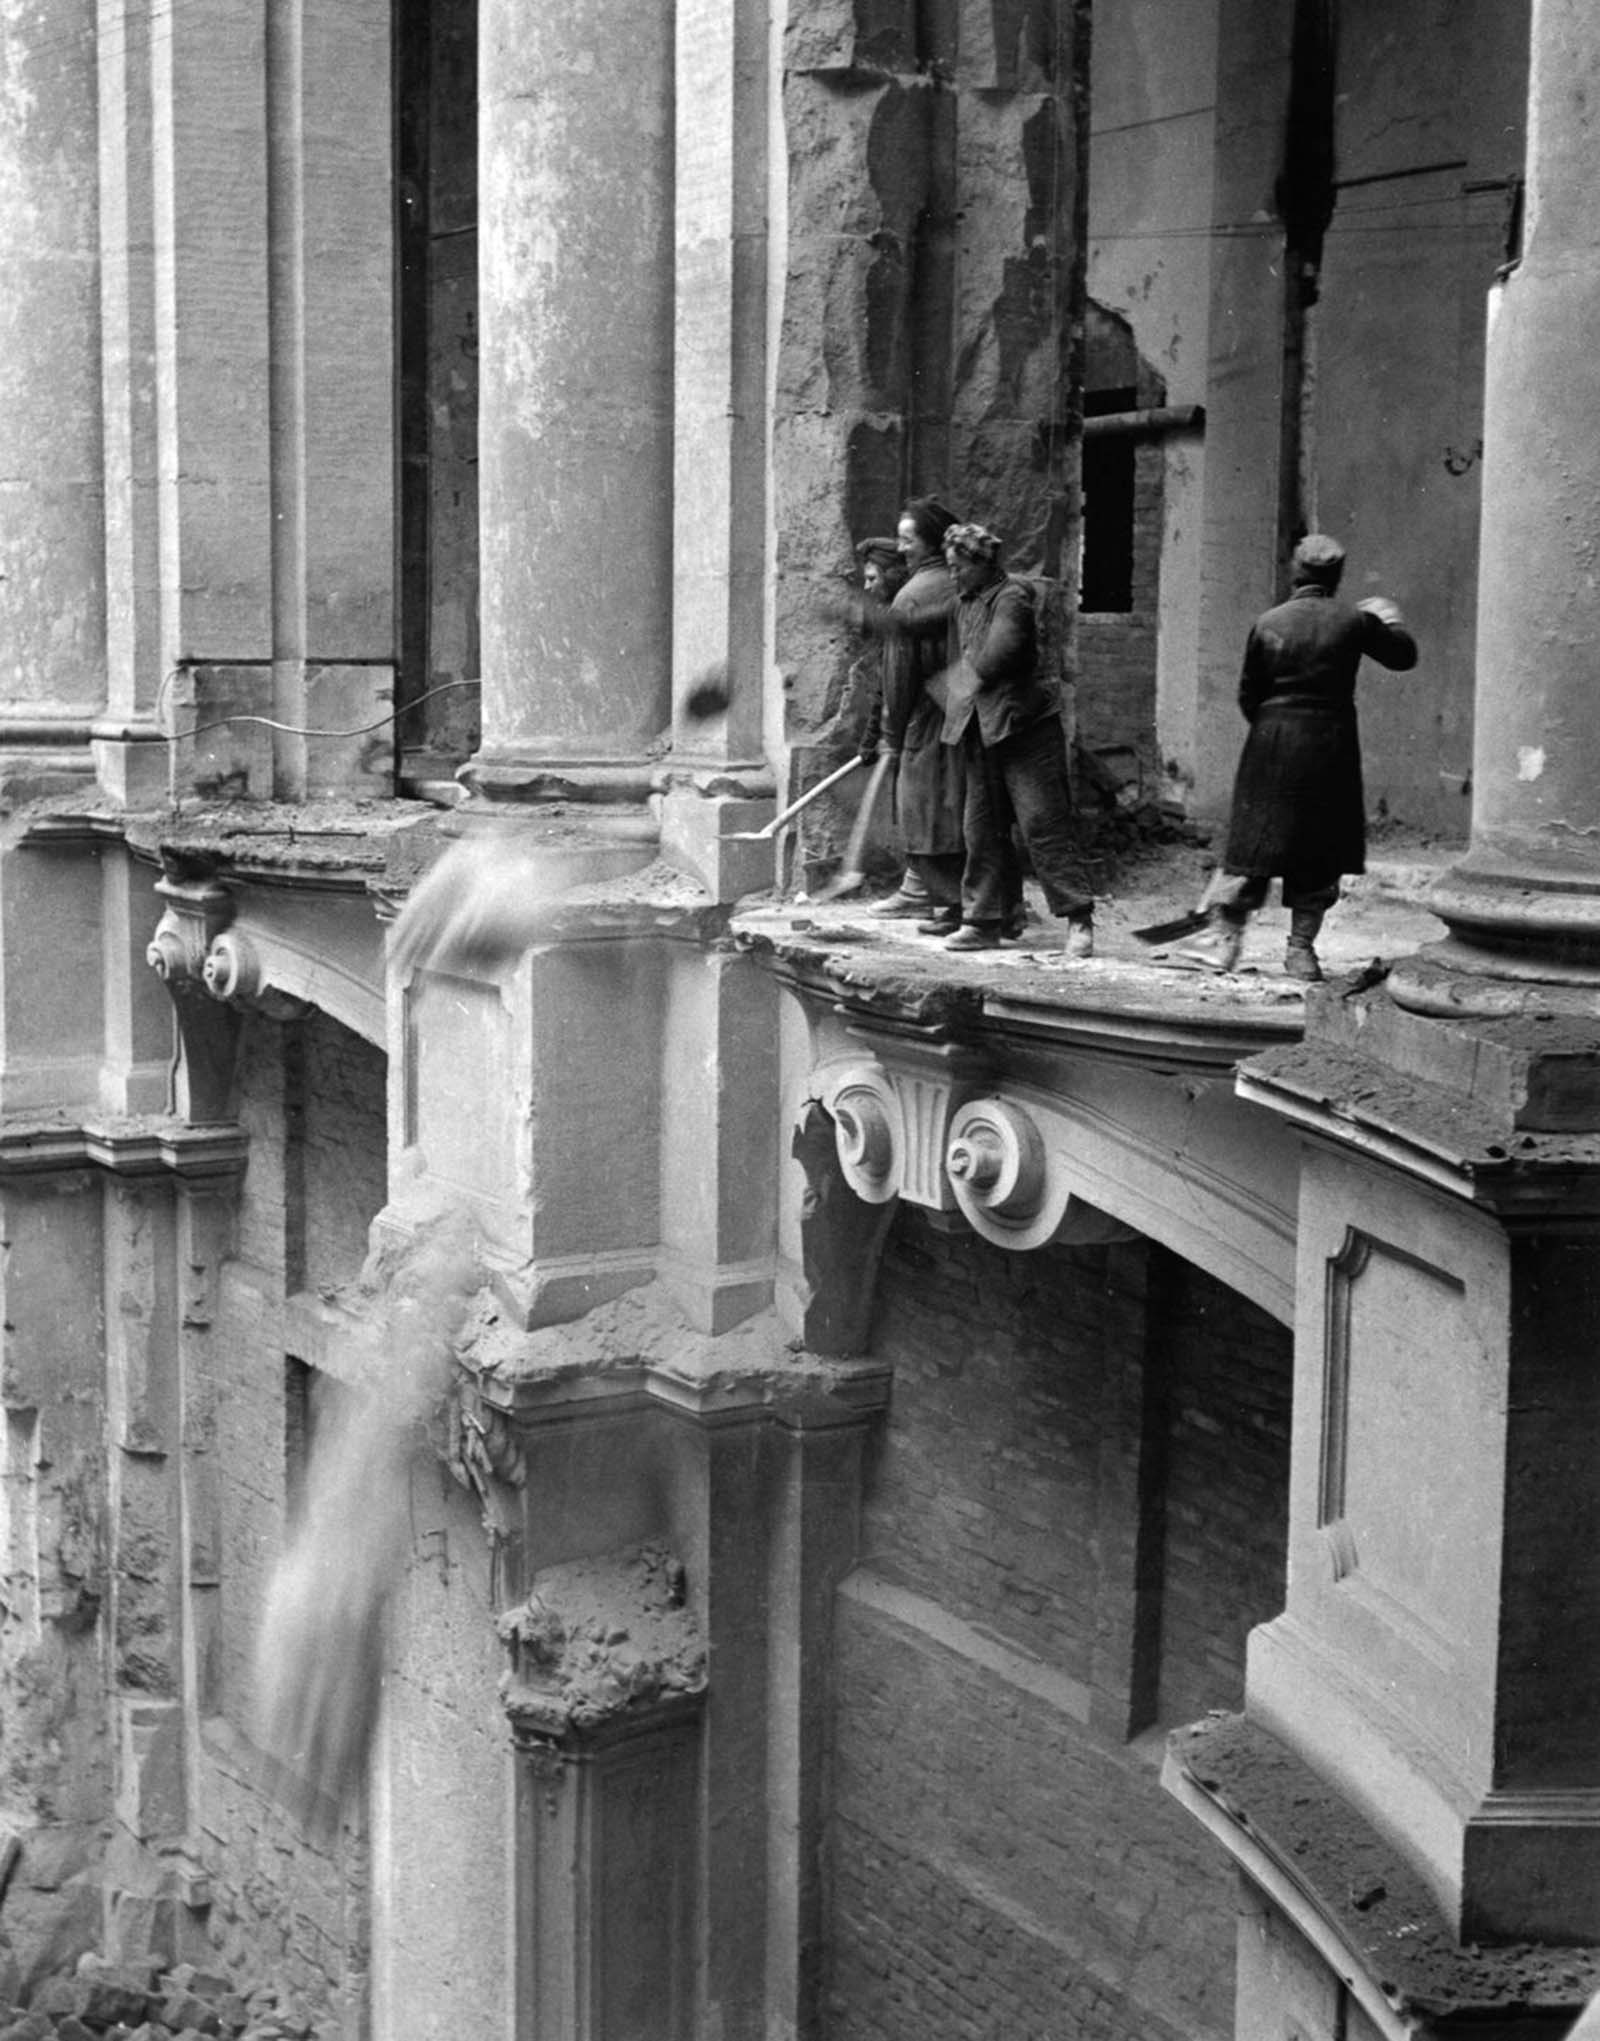 Women clear debris from the Zwinger art gallery. 1946.